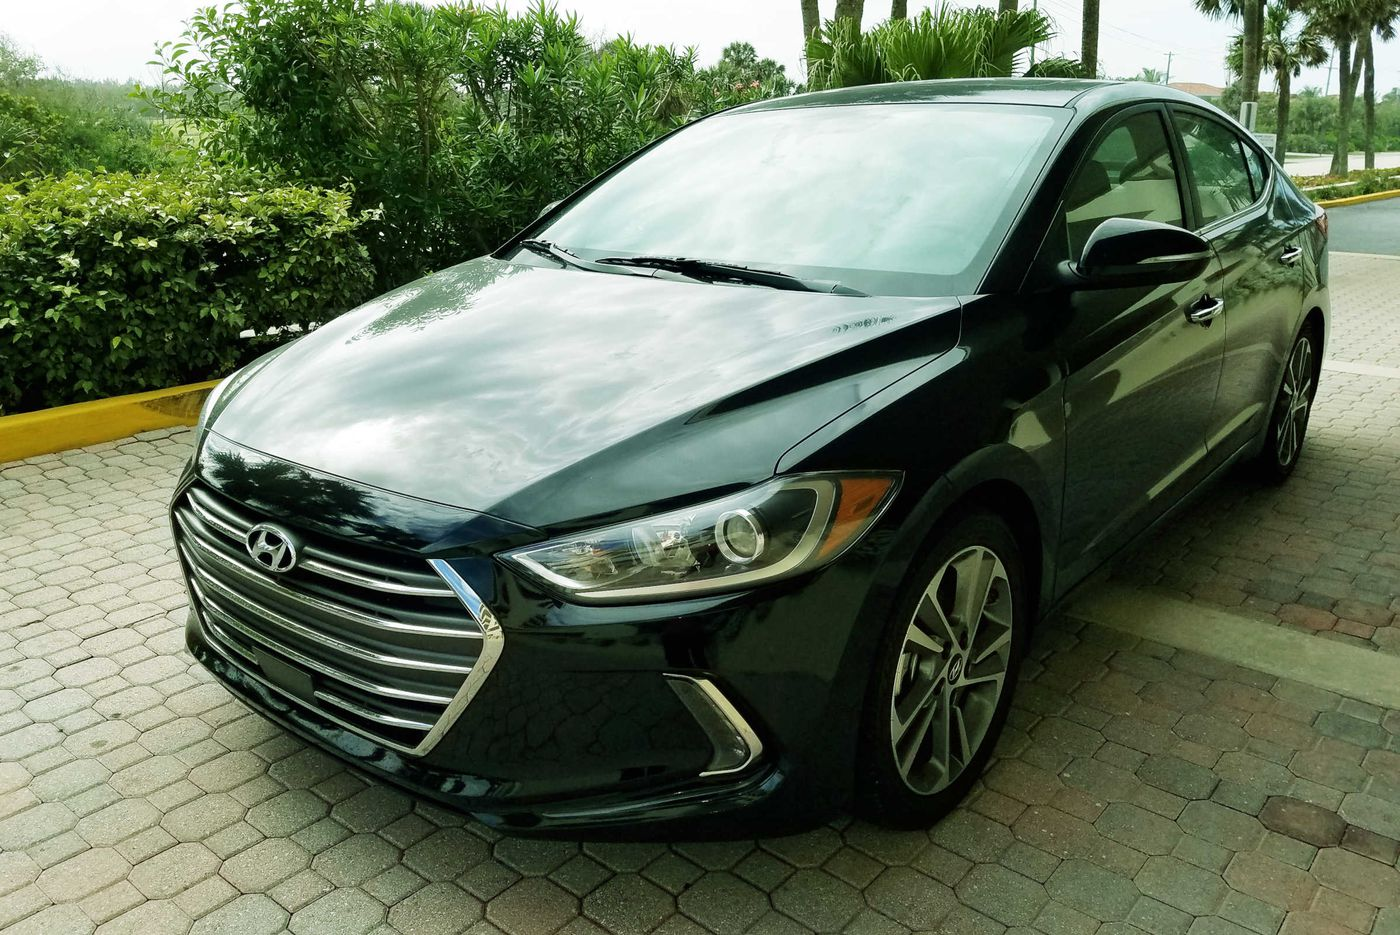 Hyundai Elantra offers styling, comfort, and connectivity